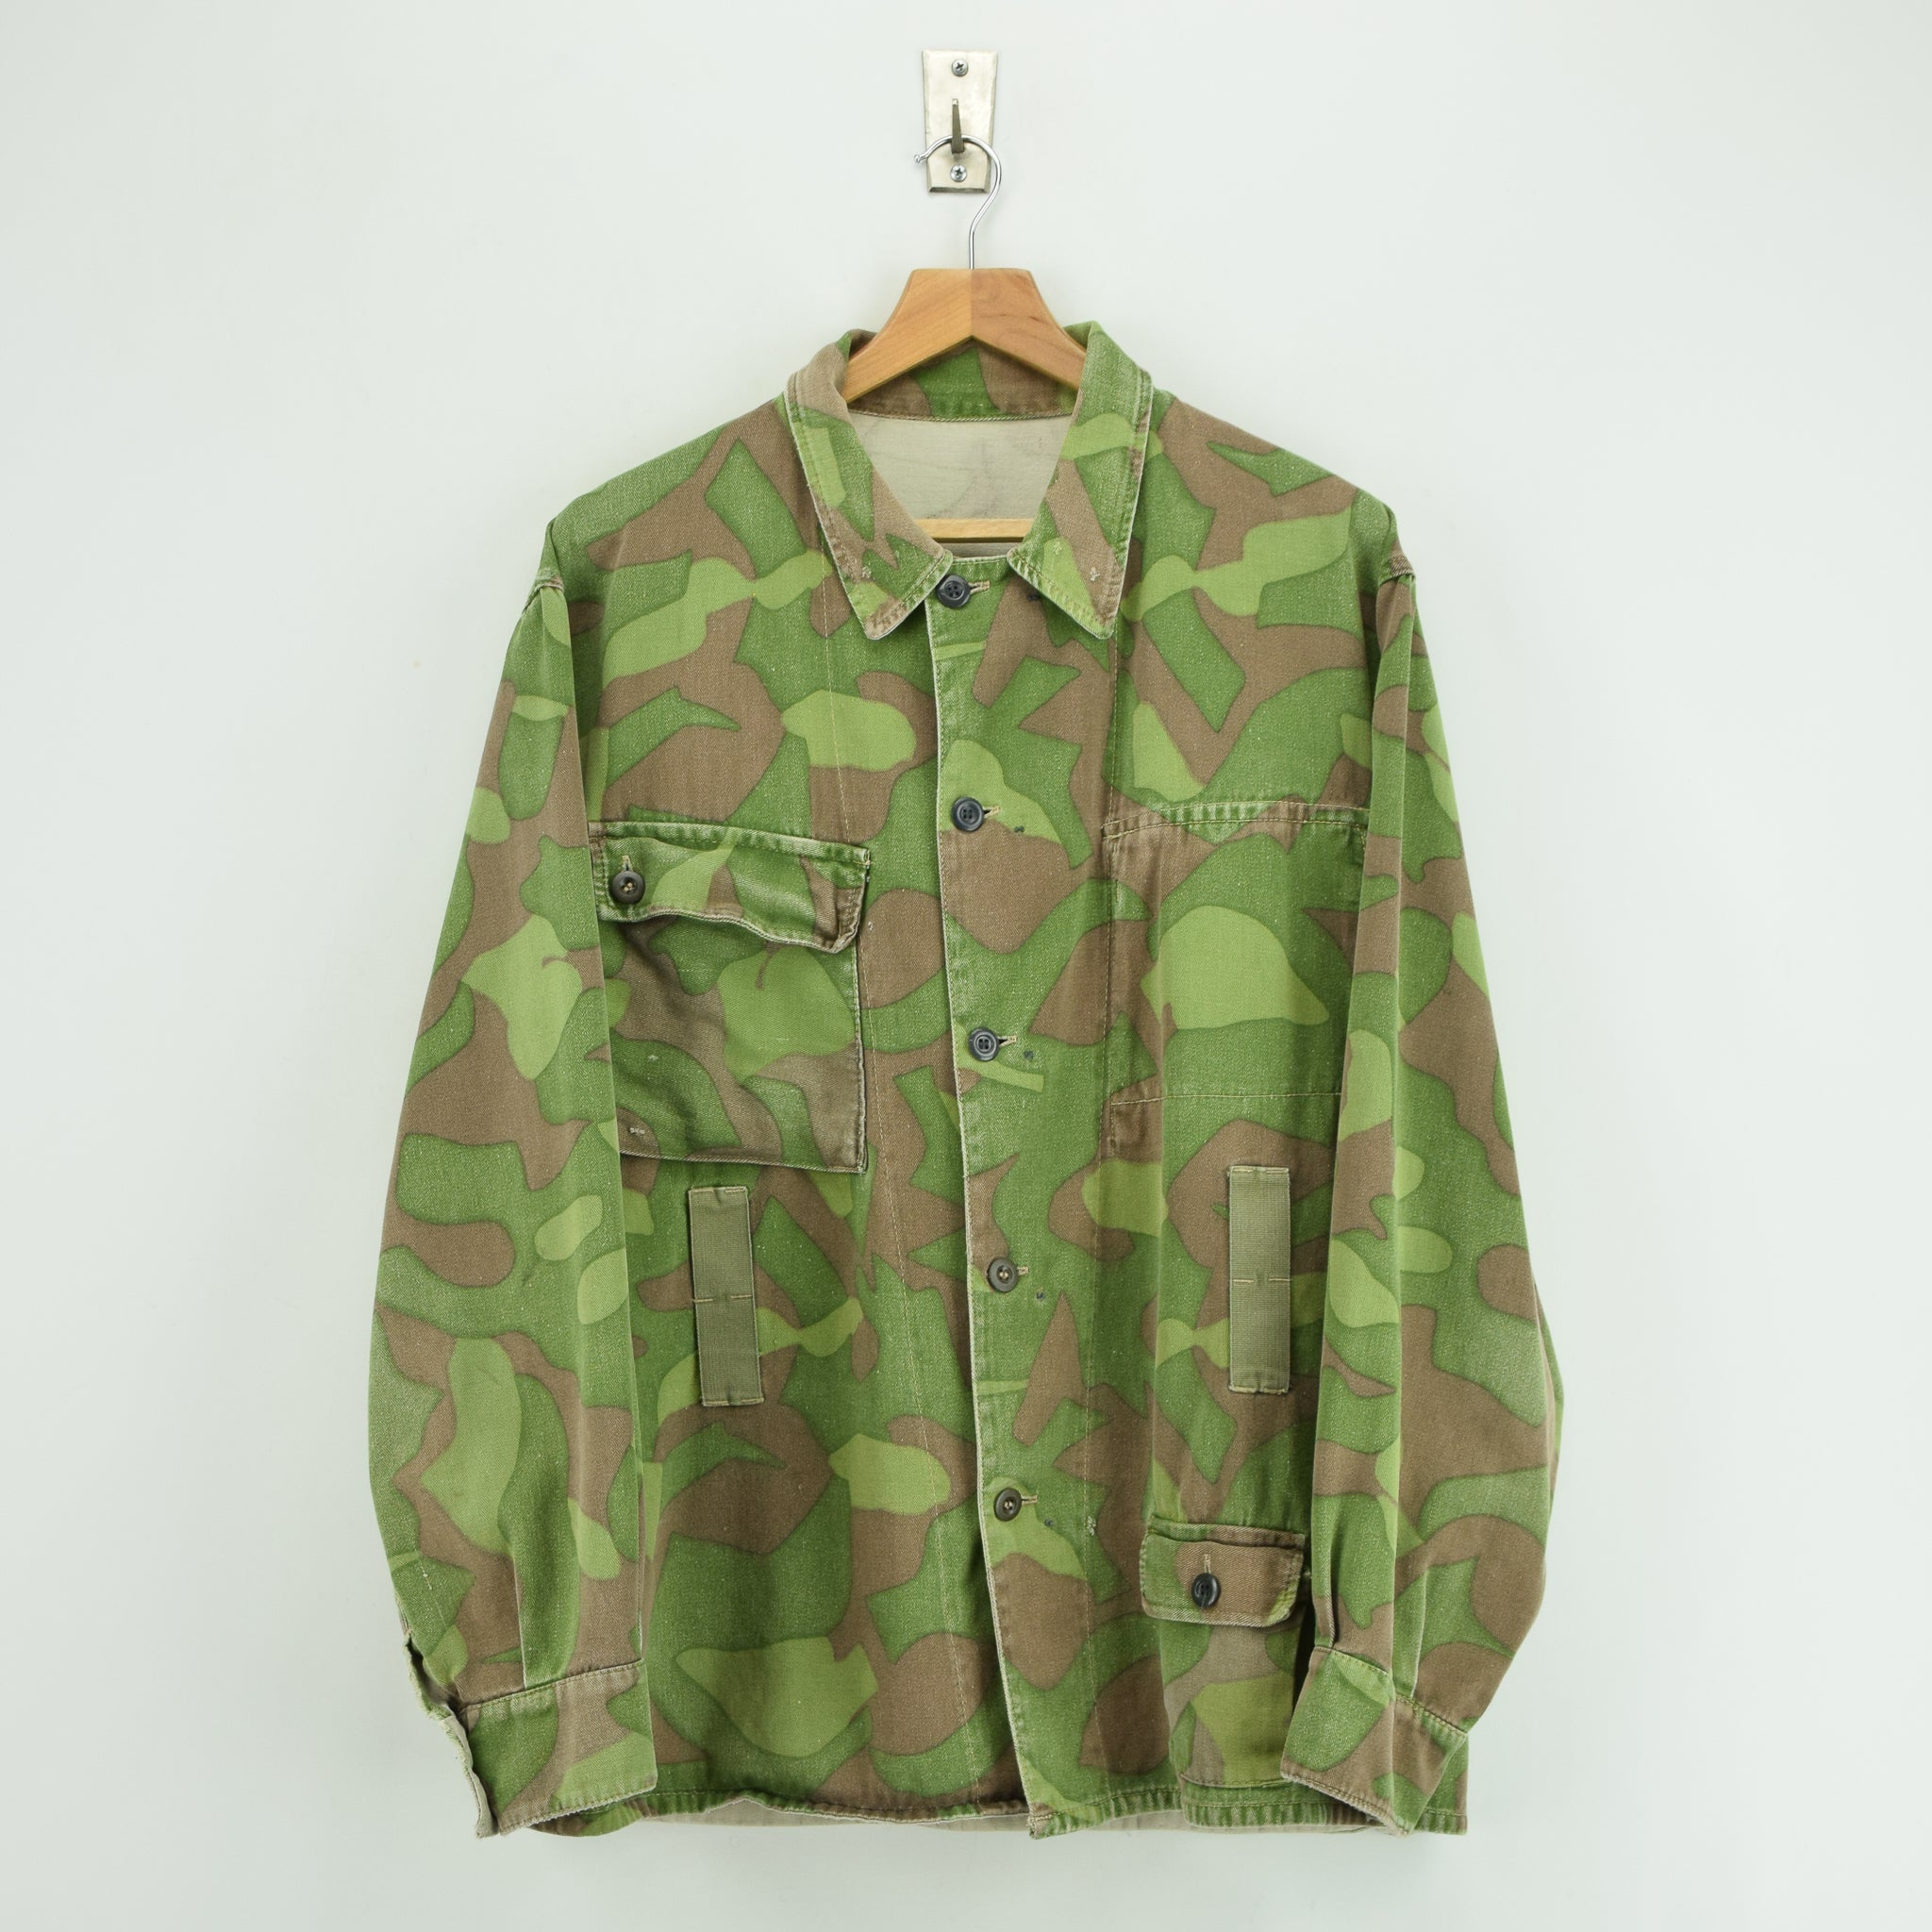 Vintage 60s Military Finnish Army Green Camo Mountain Field Jacket XL front